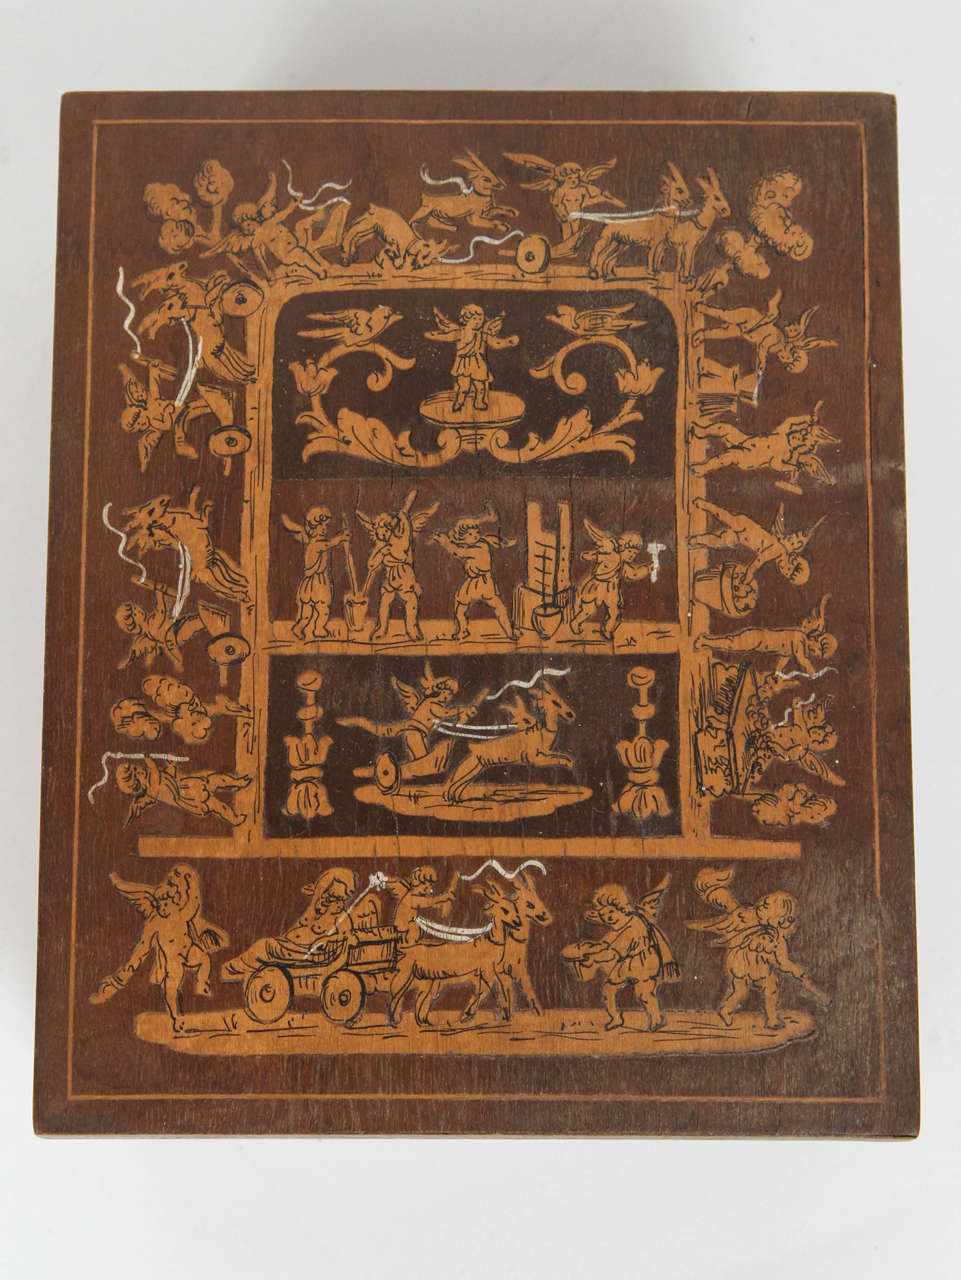 19th century French inlay wooden cigarette box. Finely inlaid with fruit wood. Scenes of cherubs playing.